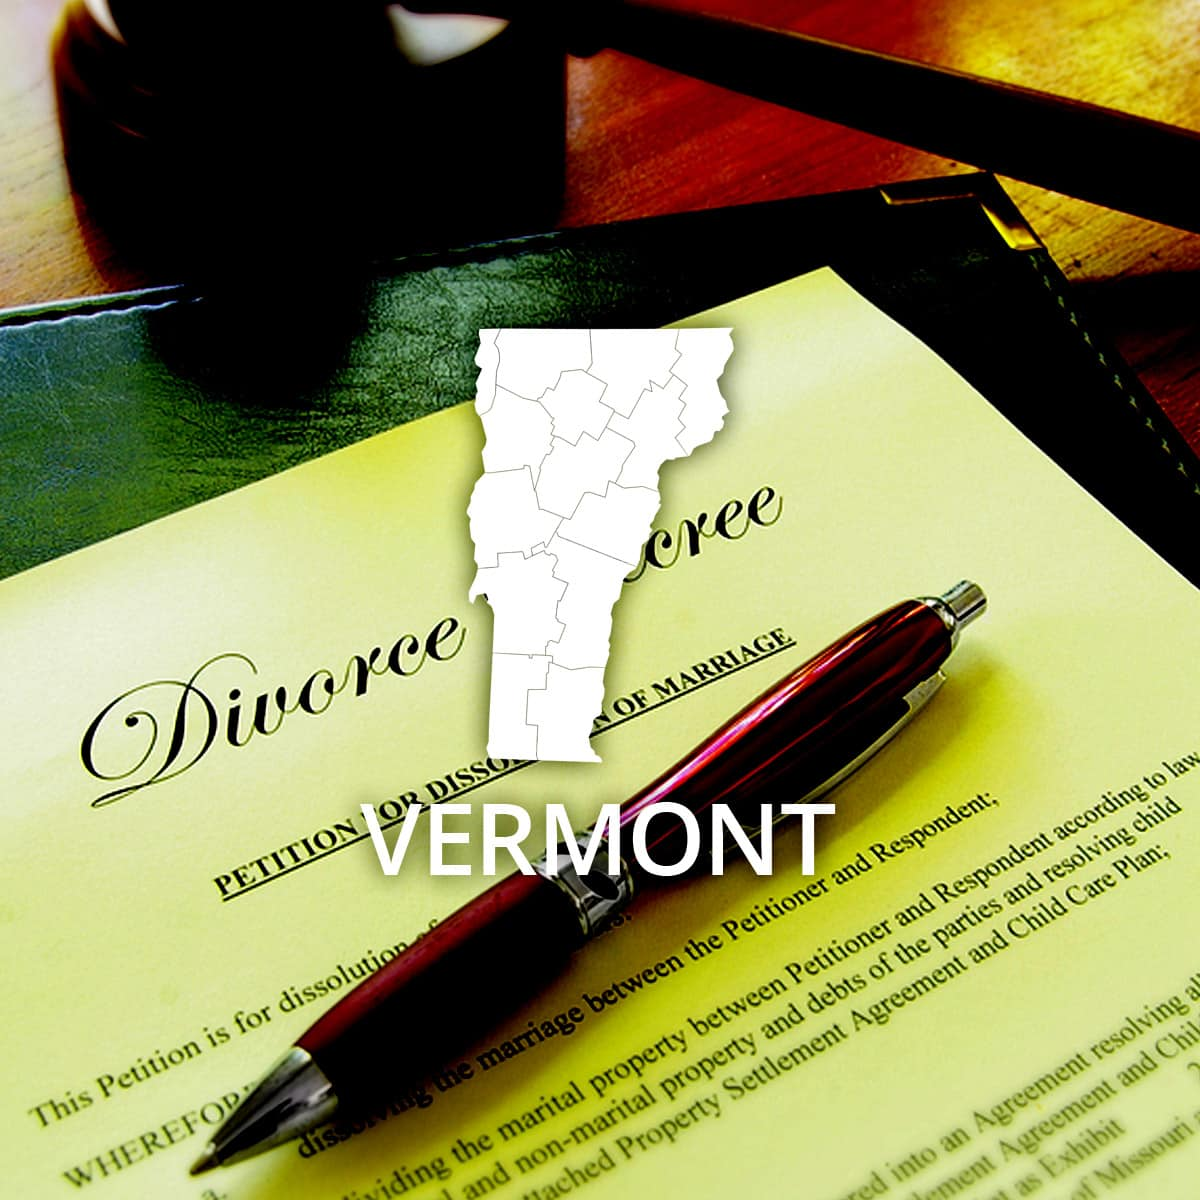 Where to Obtain a Vermont Divorce Certificate